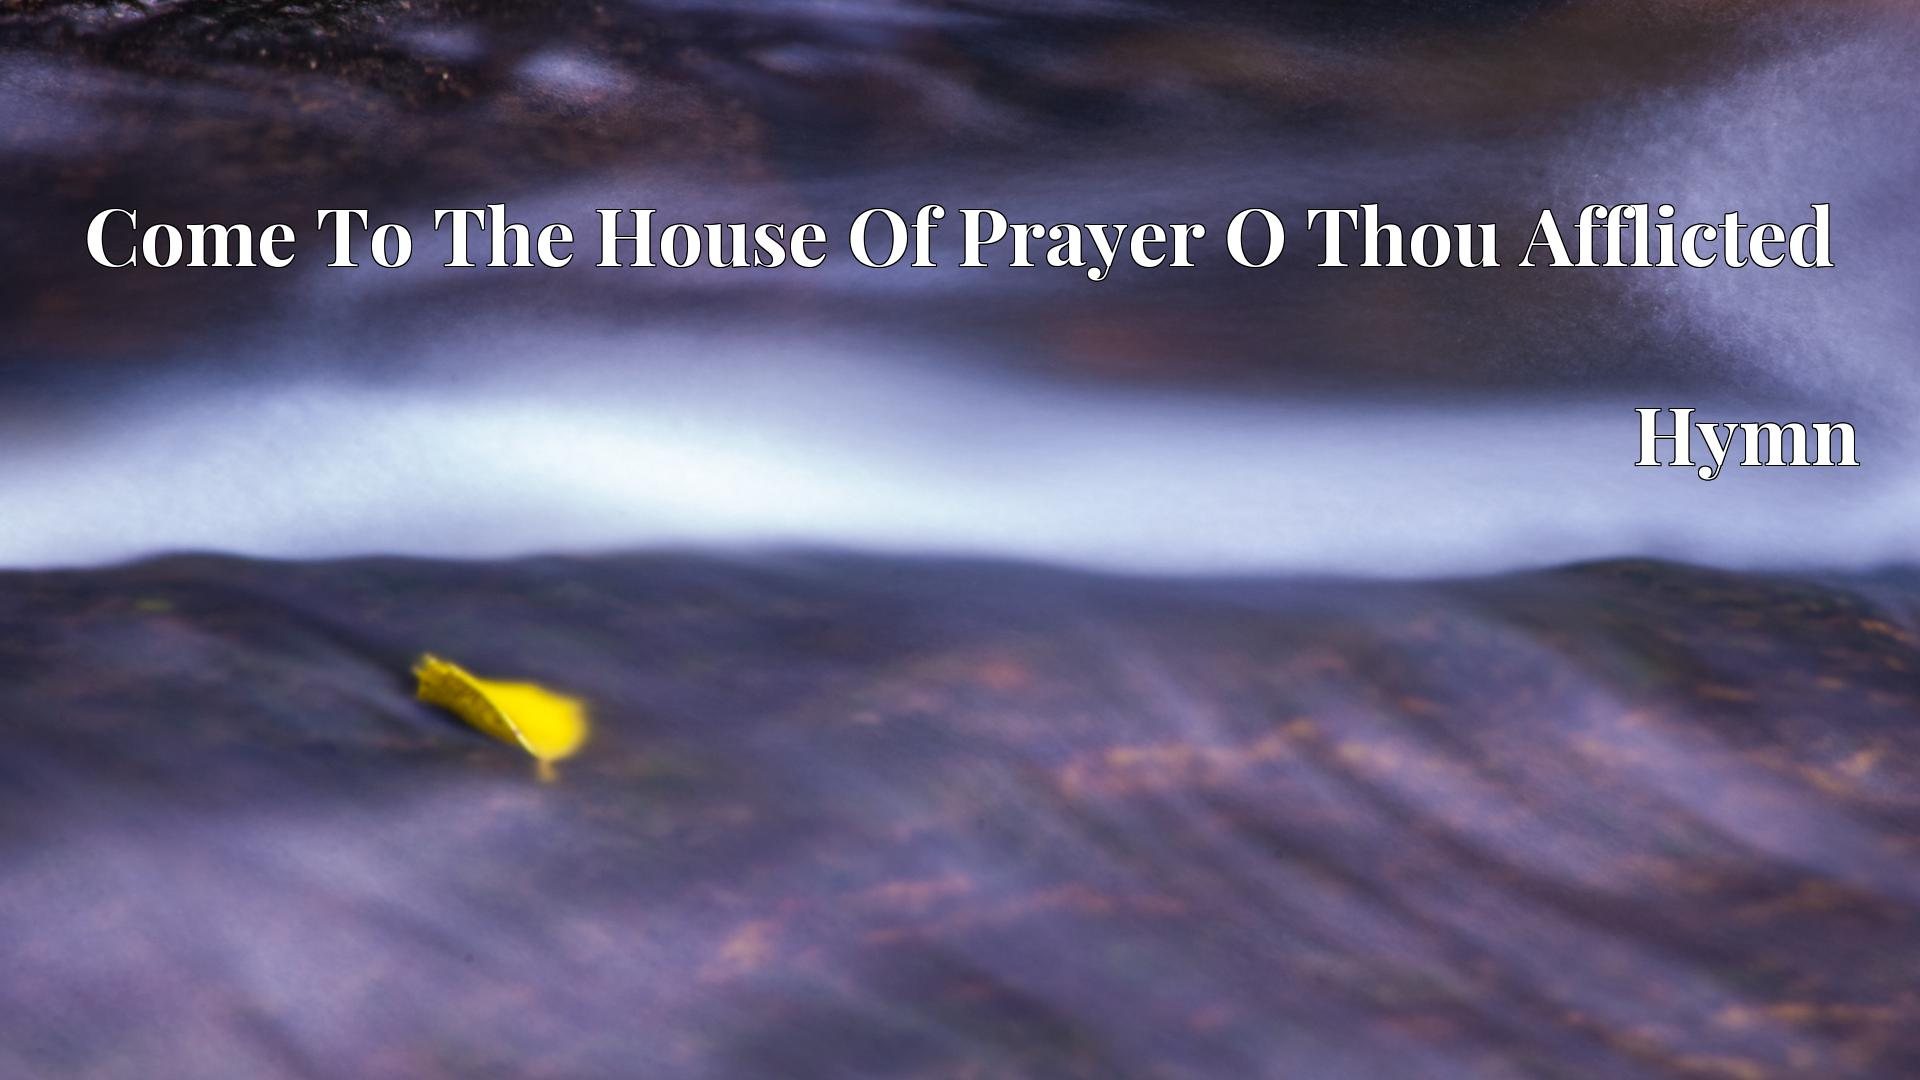 Come To The House Of Prayer O Thou Afflicted Hymn Lyric